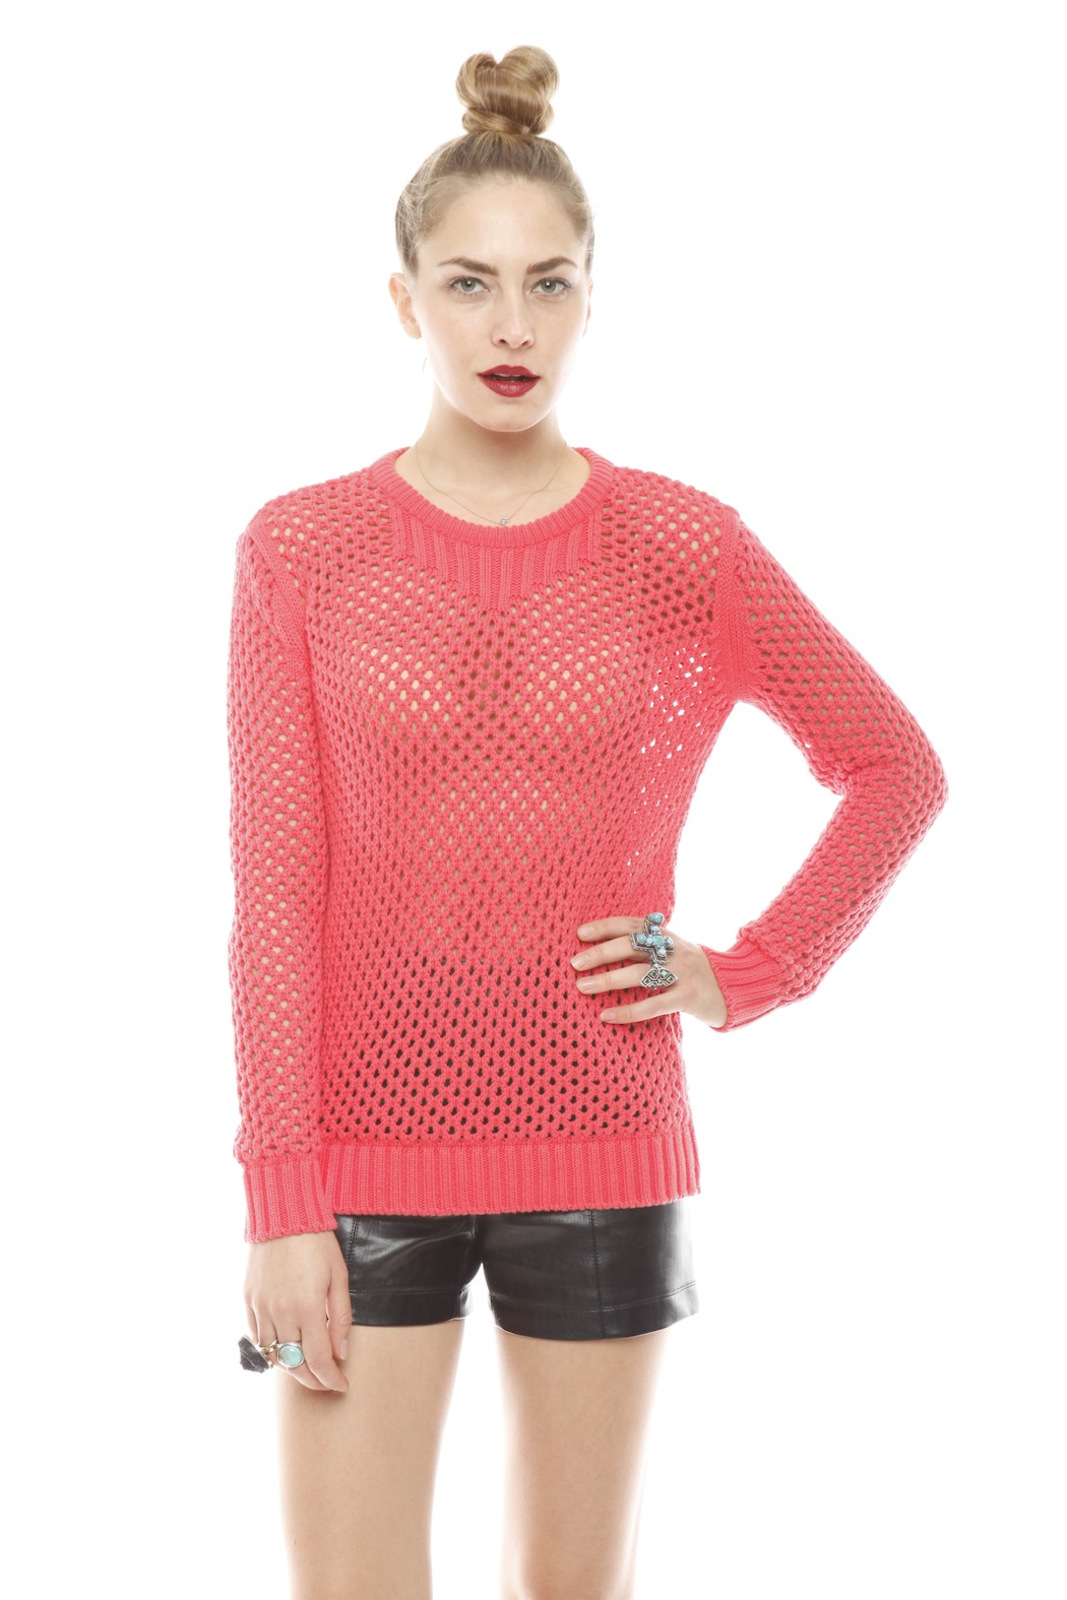 213 Industry Thick Open-Knit Sweater - Main Image